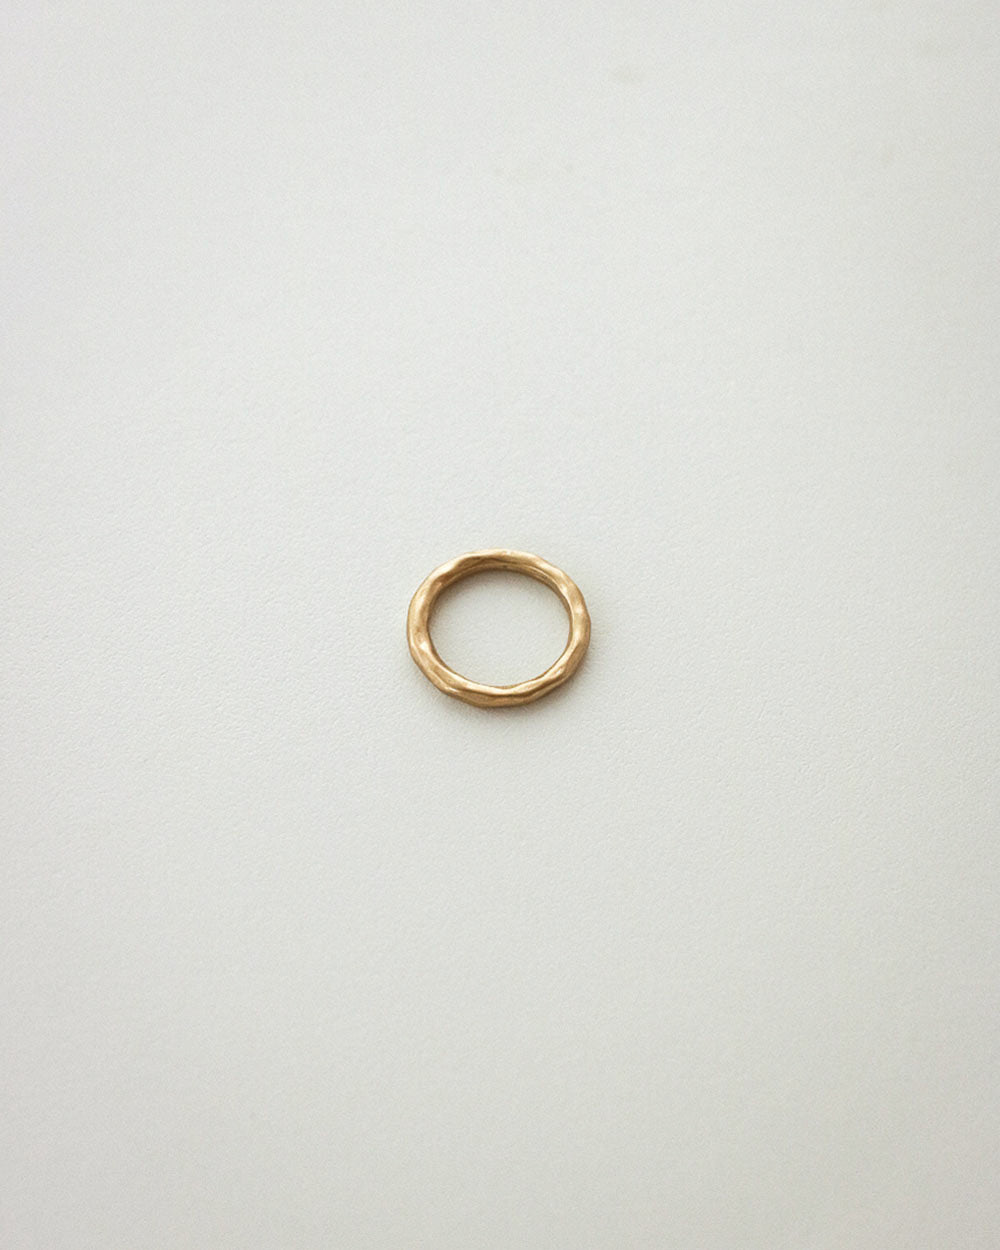 Simple, brushed finished ring in gold by The Hexad